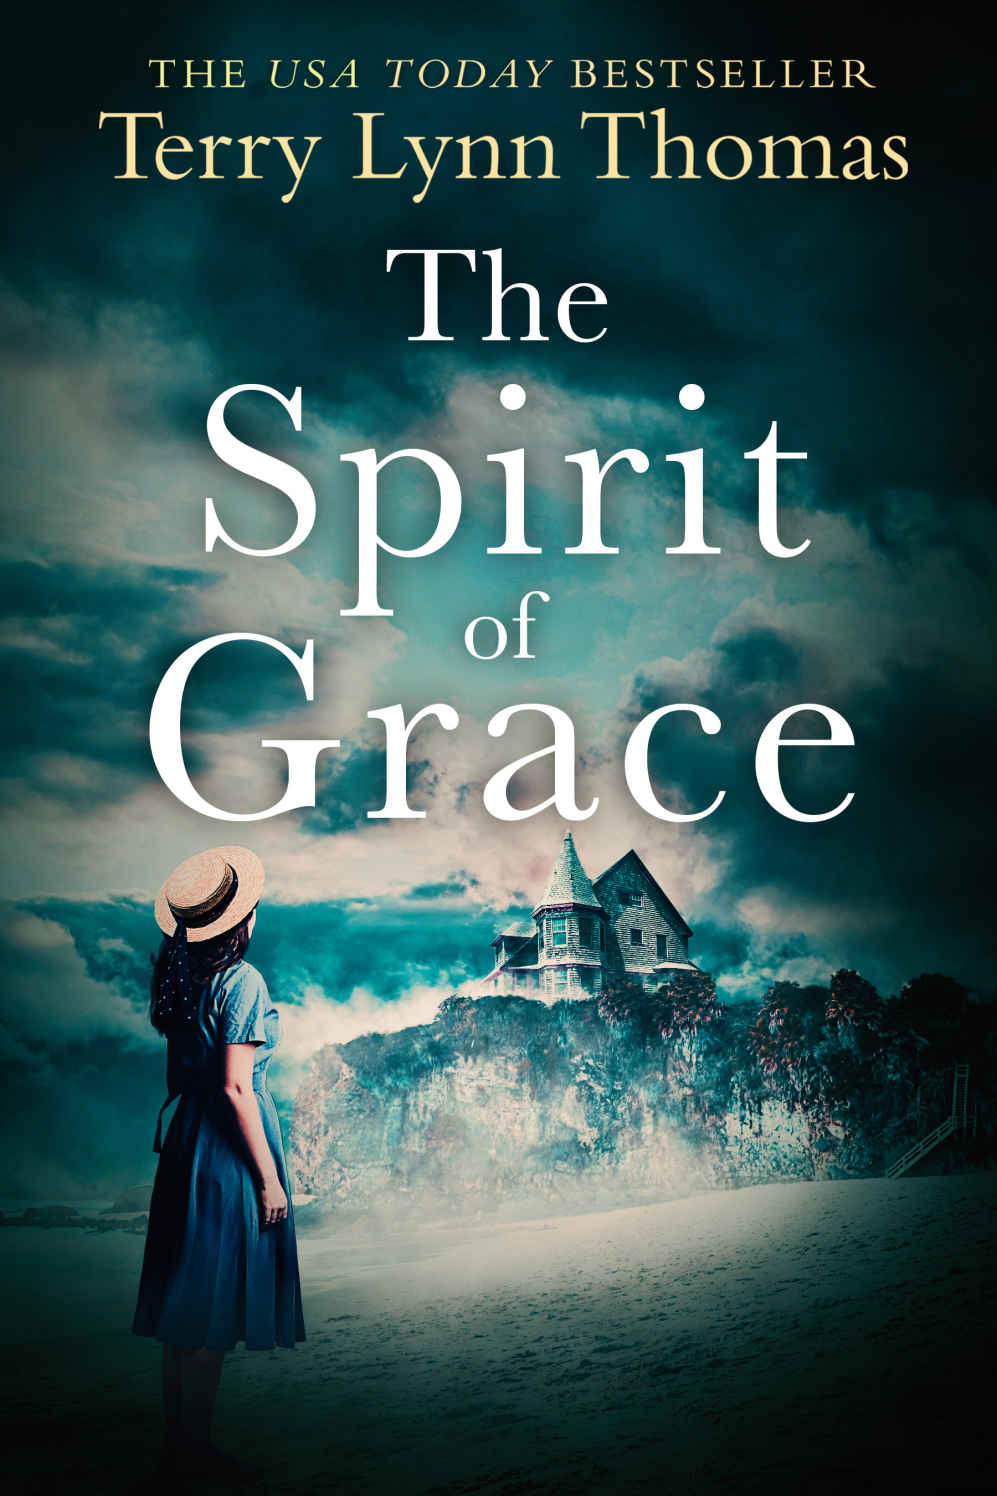 The Spirit of Grace by Terry Lynn Thomas